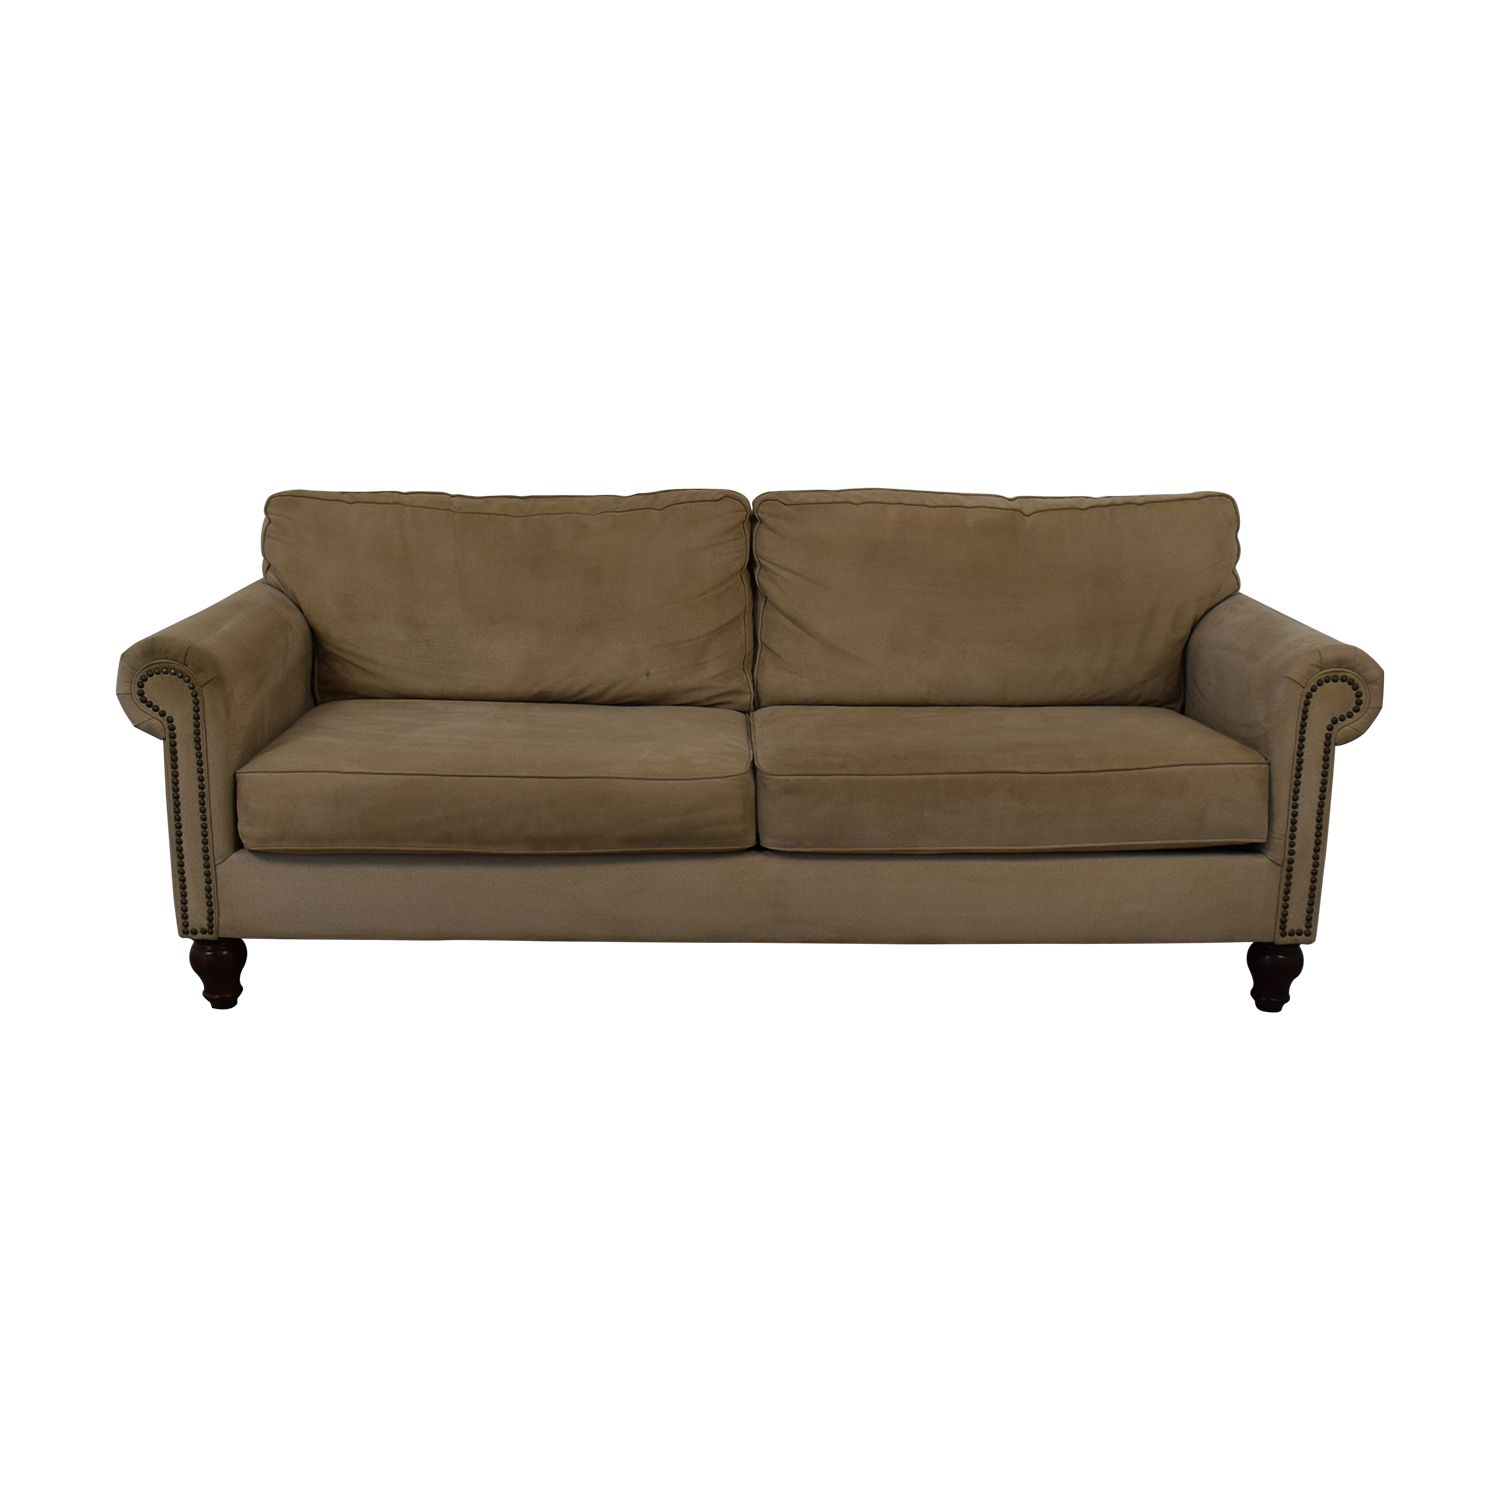 Pier 1 Alton Rolled Arm Sofa / Sofas